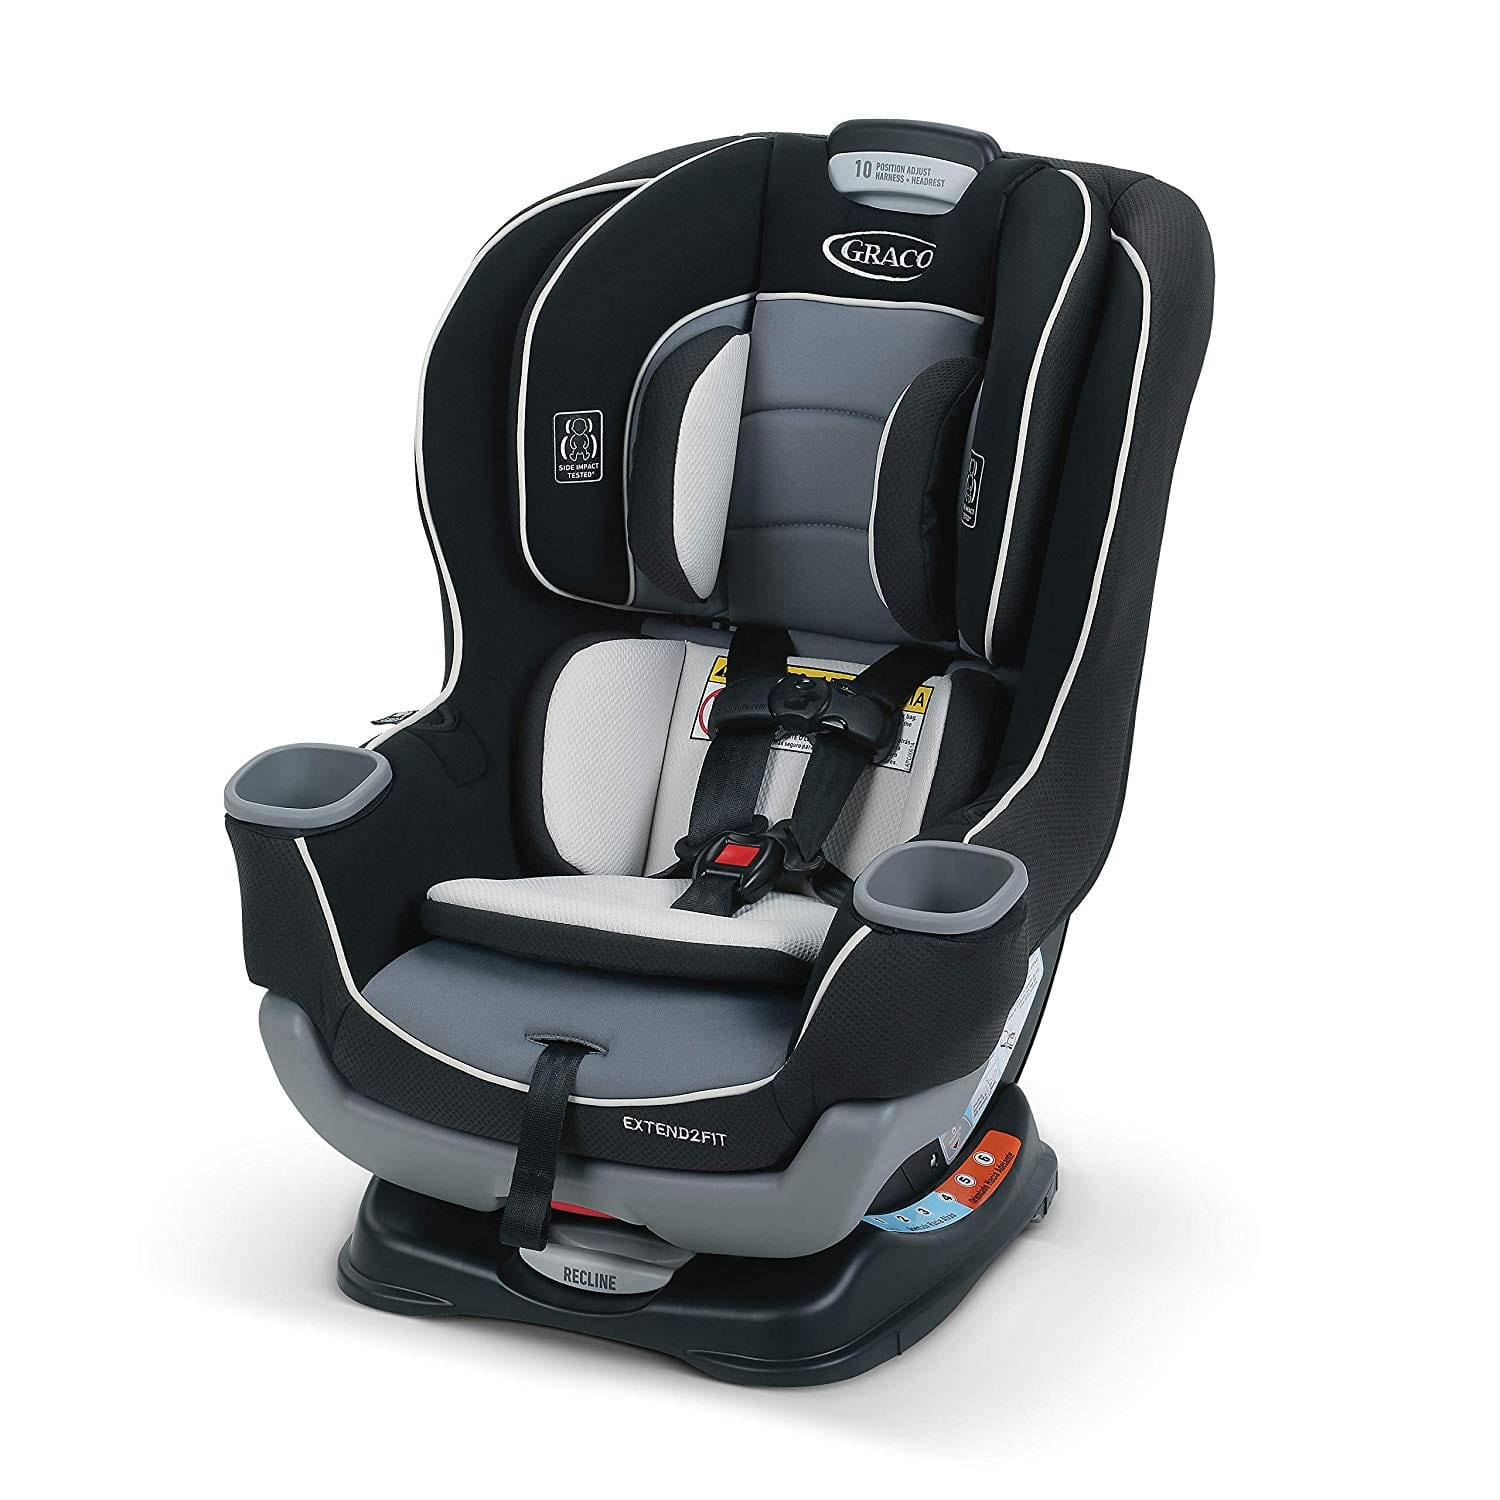 Graco Extend2Fit Convertible Car Seat (Used - Like New) $97.65 + Free Shipping